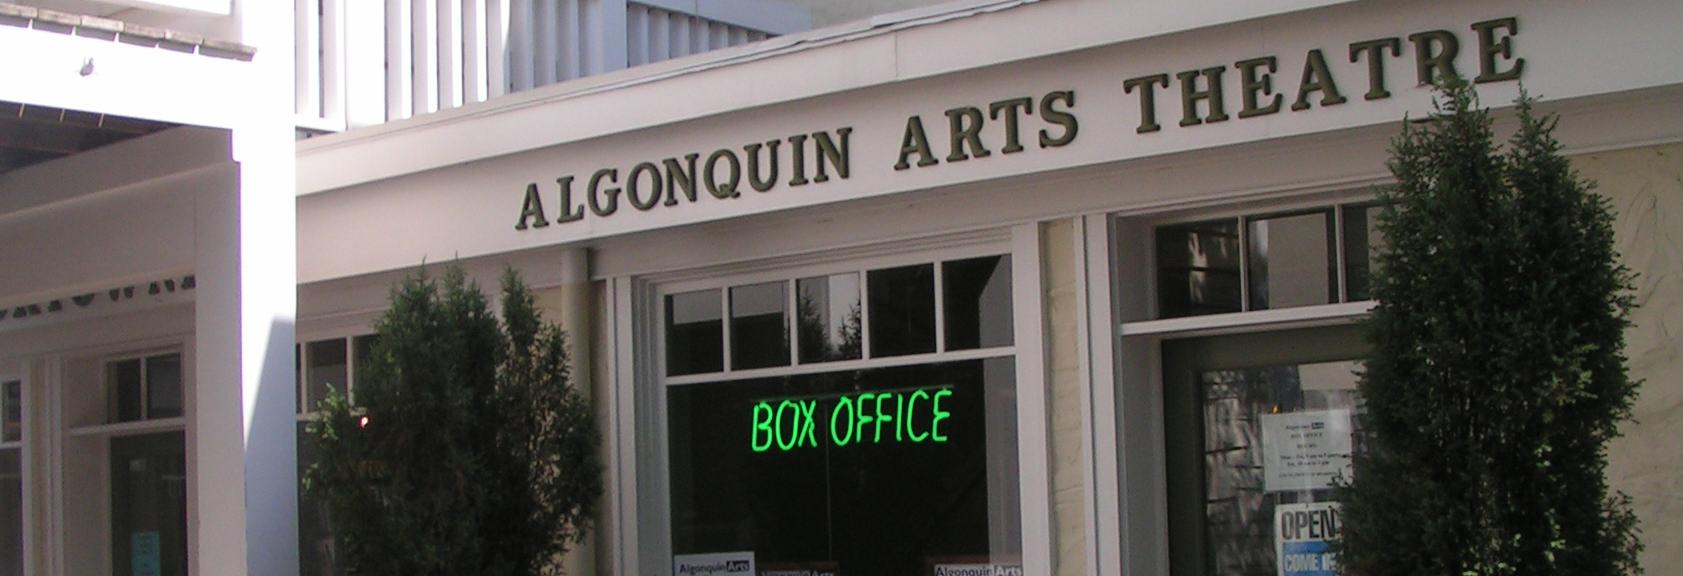 Algonquin Arts Theater Box Office banner